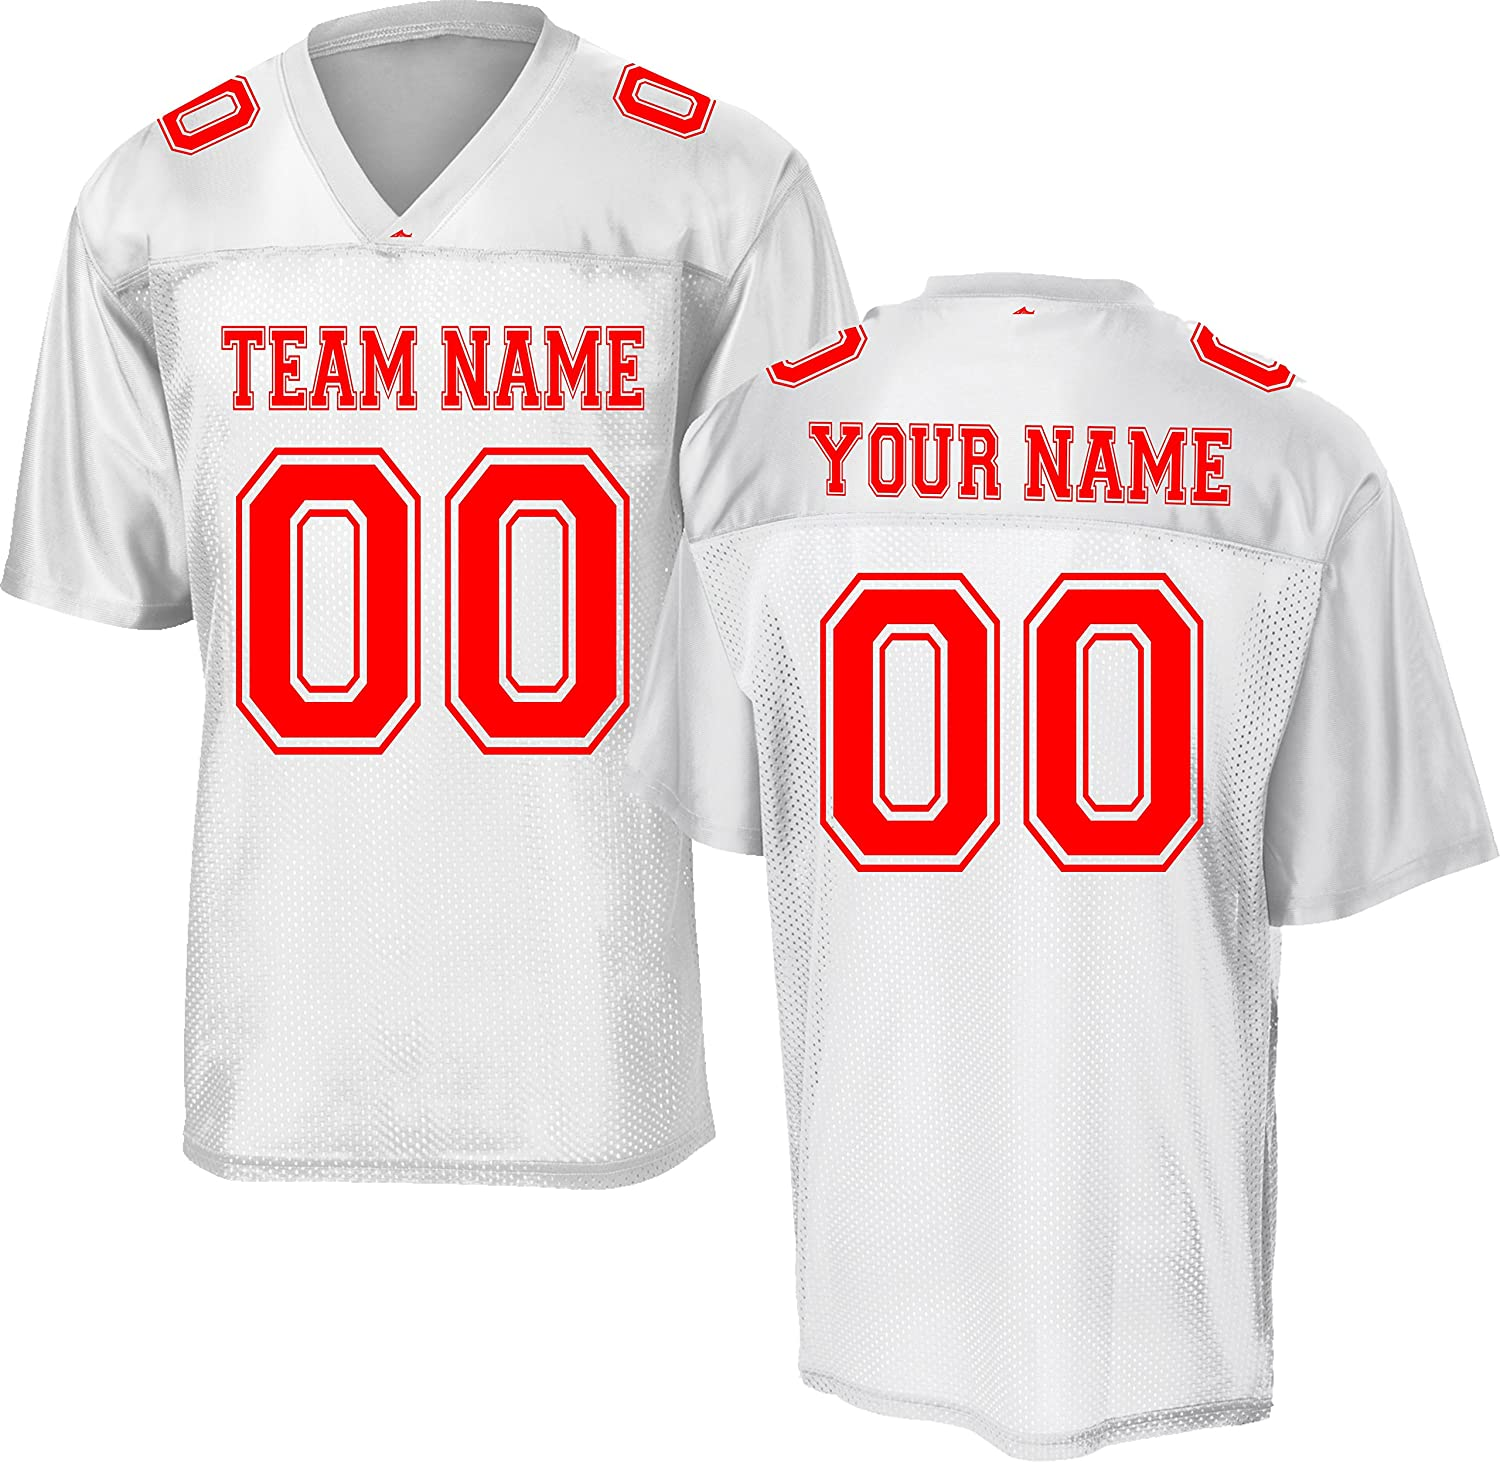 Custom Replica/Practice Football Jersey (Unisex, Youth/Adult) - Add Your Team,...